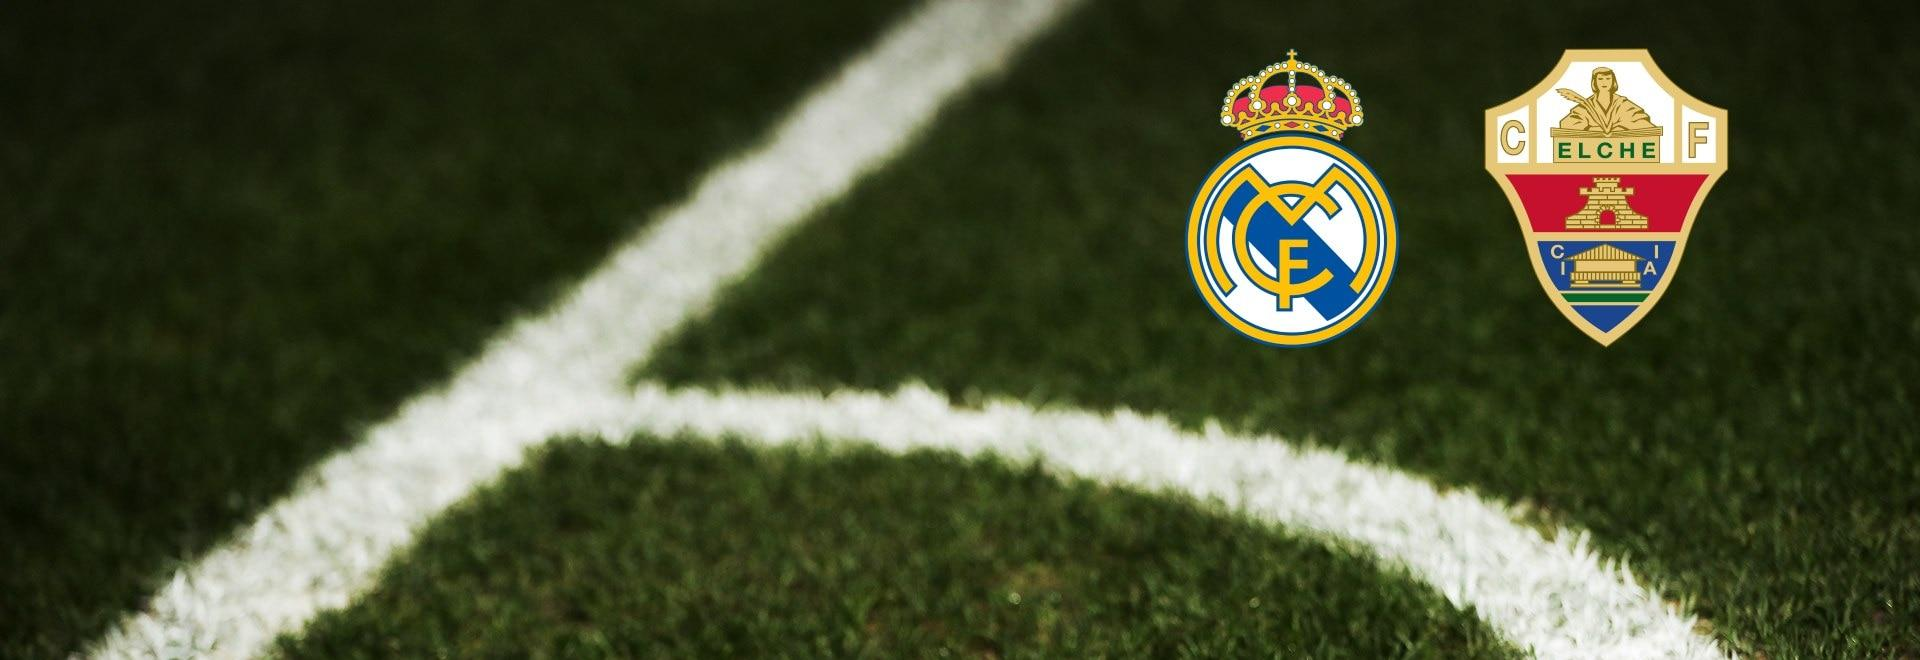 Real Madrid - Elche. 27a g.